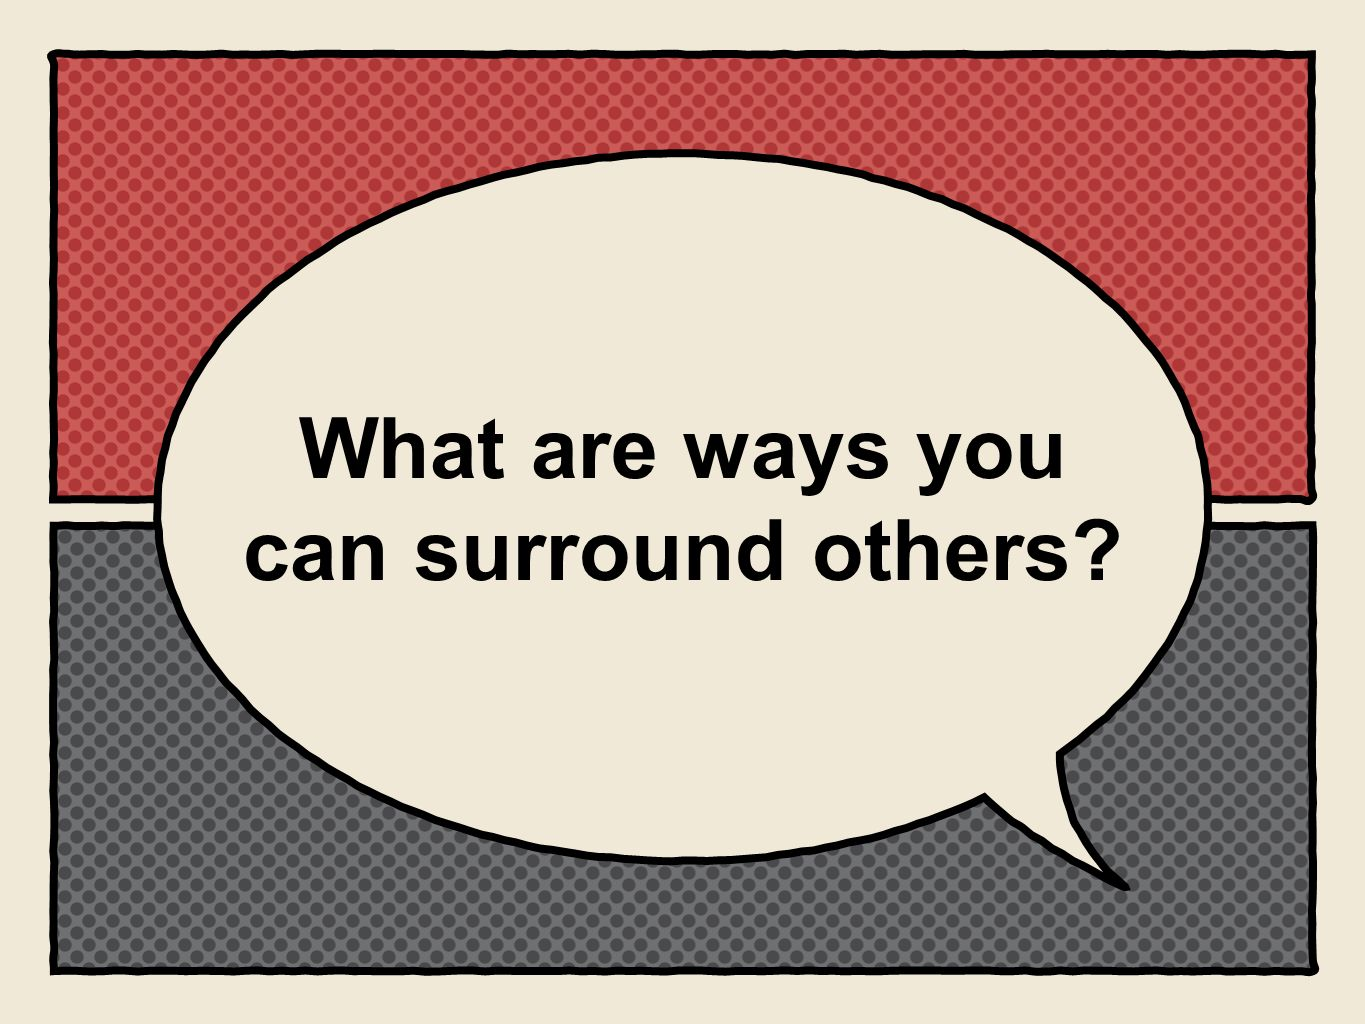 What are ways you can surround others?